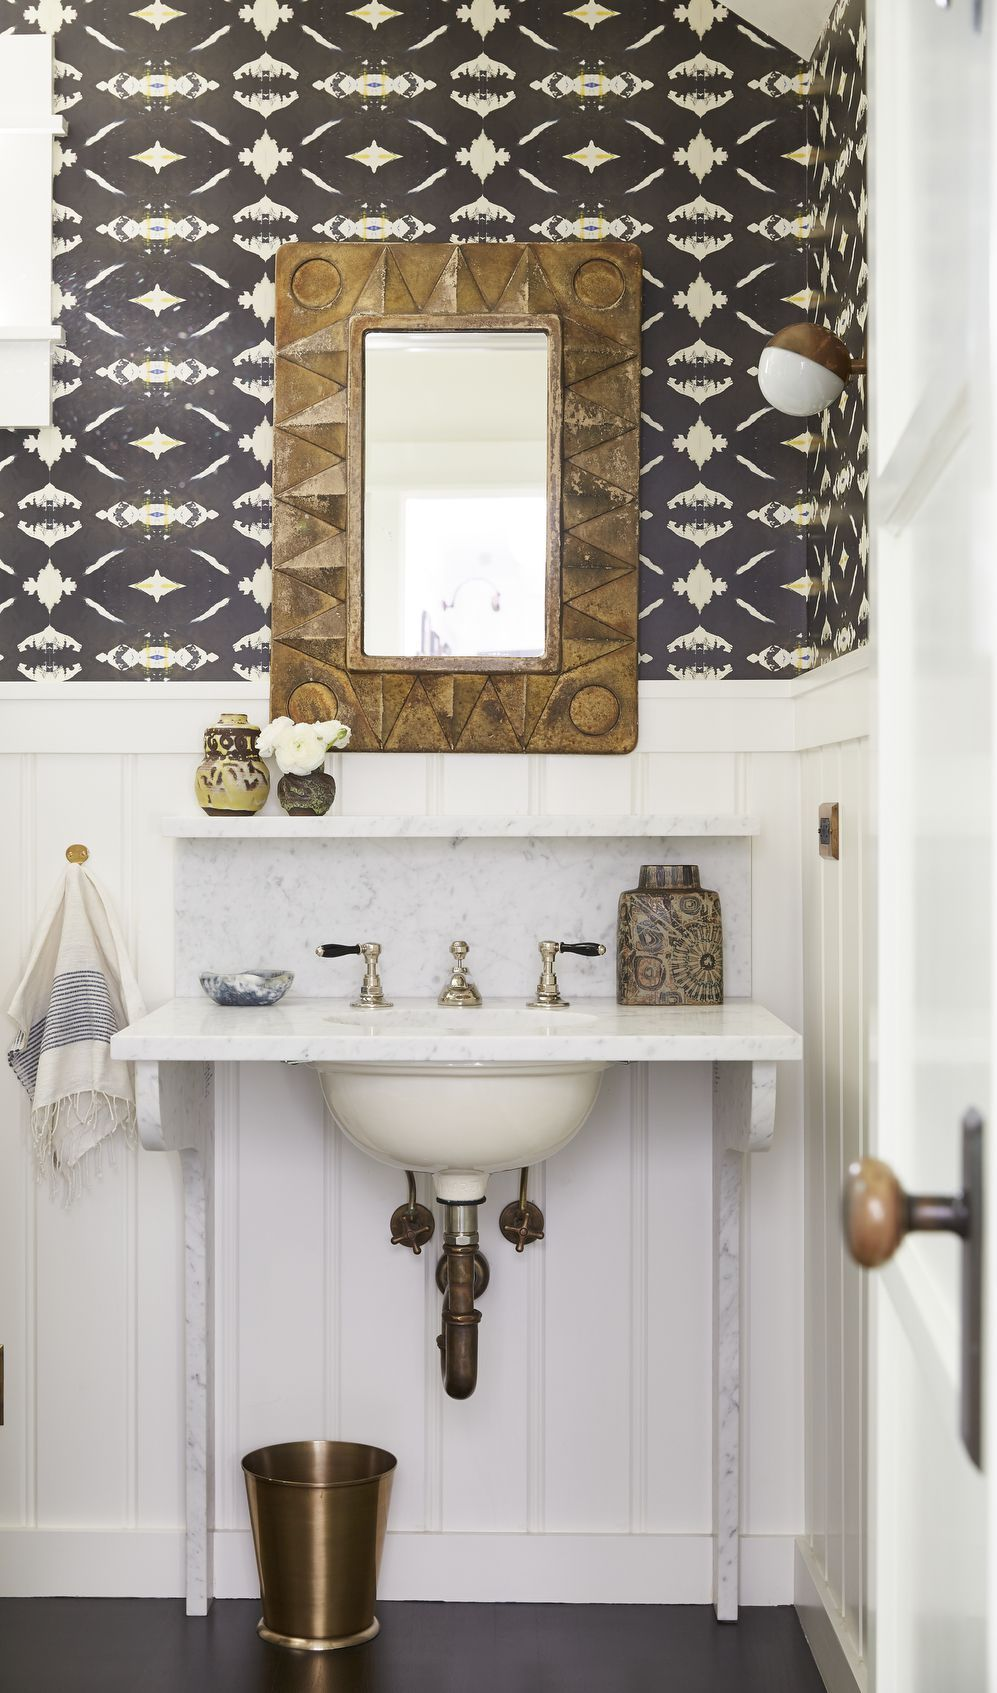 13 Rustic Bathrooms For When You Want To Elegantly Rough It Rustic Bathrooms Amazing Bathrooms Bathroom Inspiration